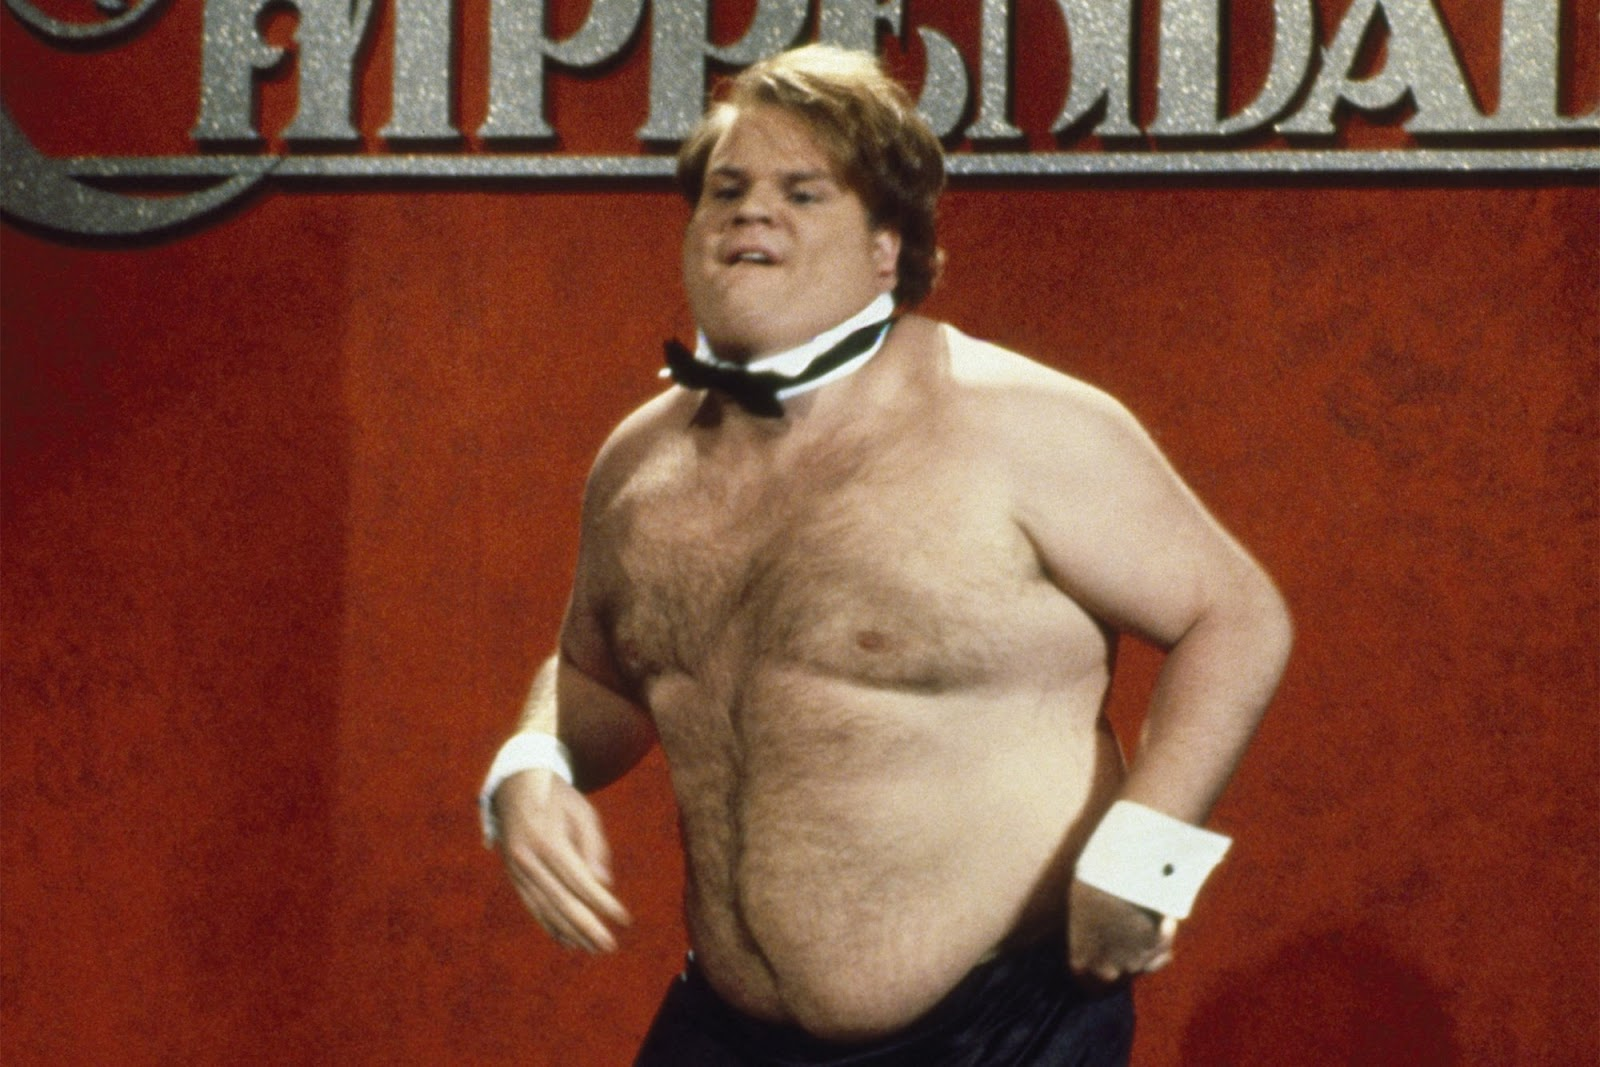 chris farley chippendale - Images for chris farley chippendale